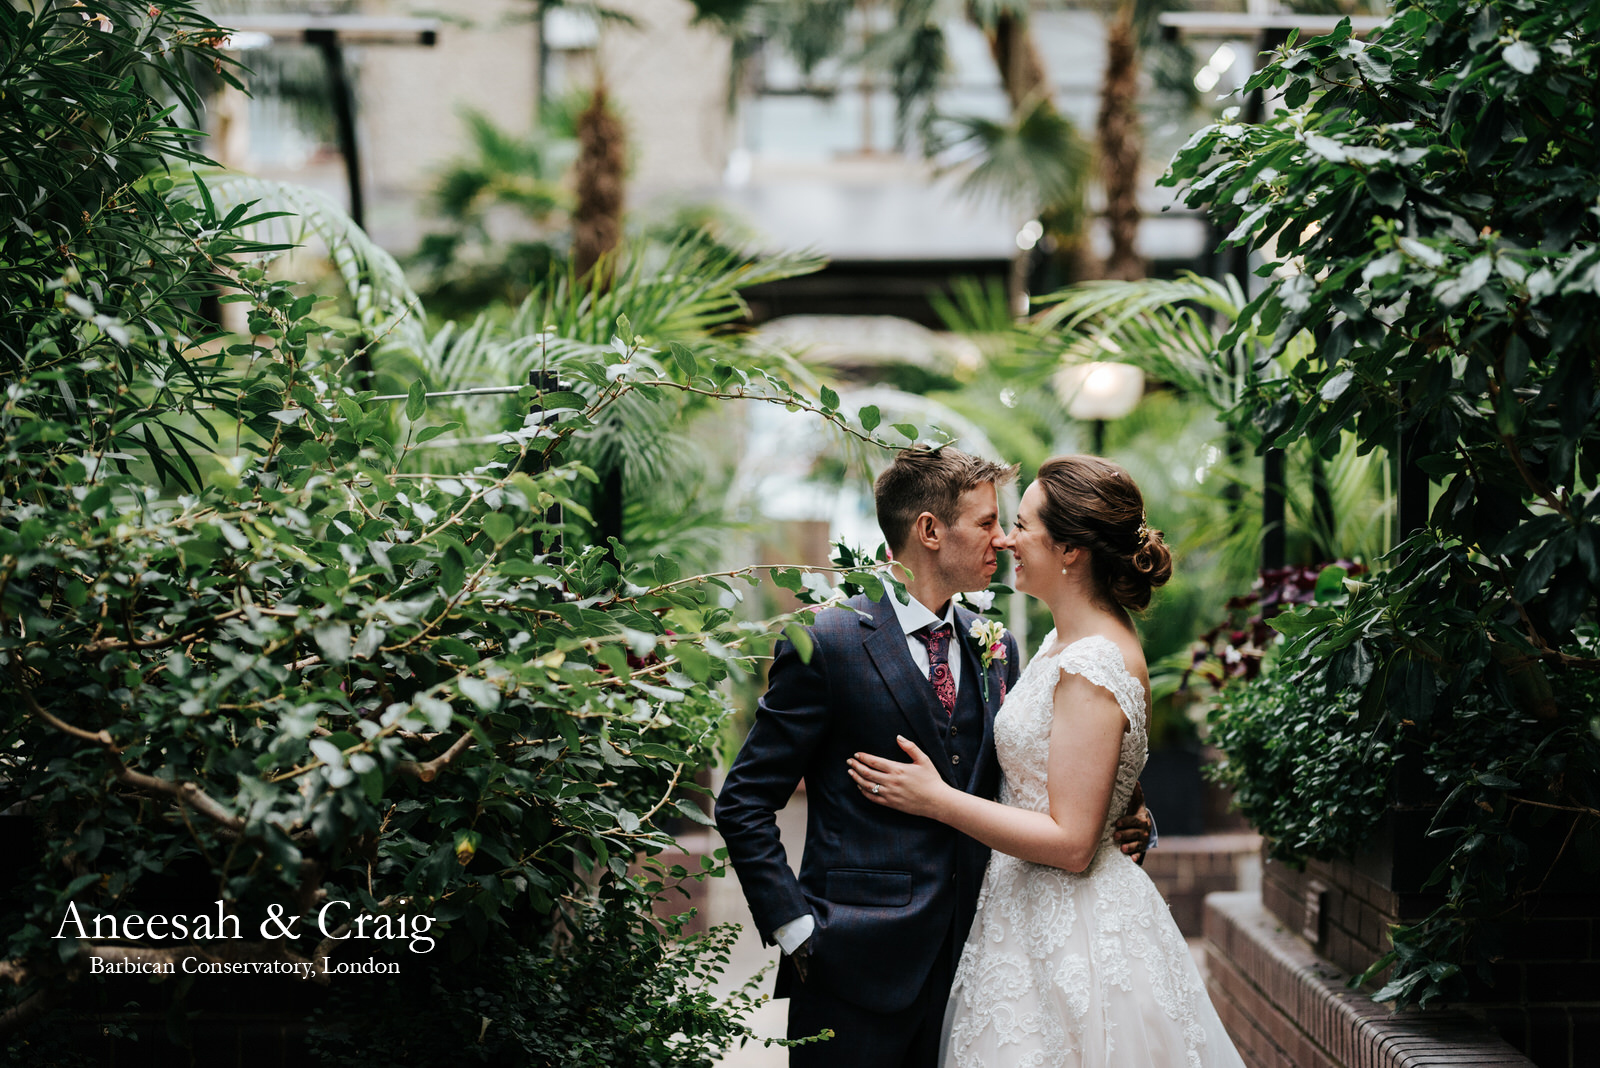 Cute photograph of bride and groom touching noses and smiling